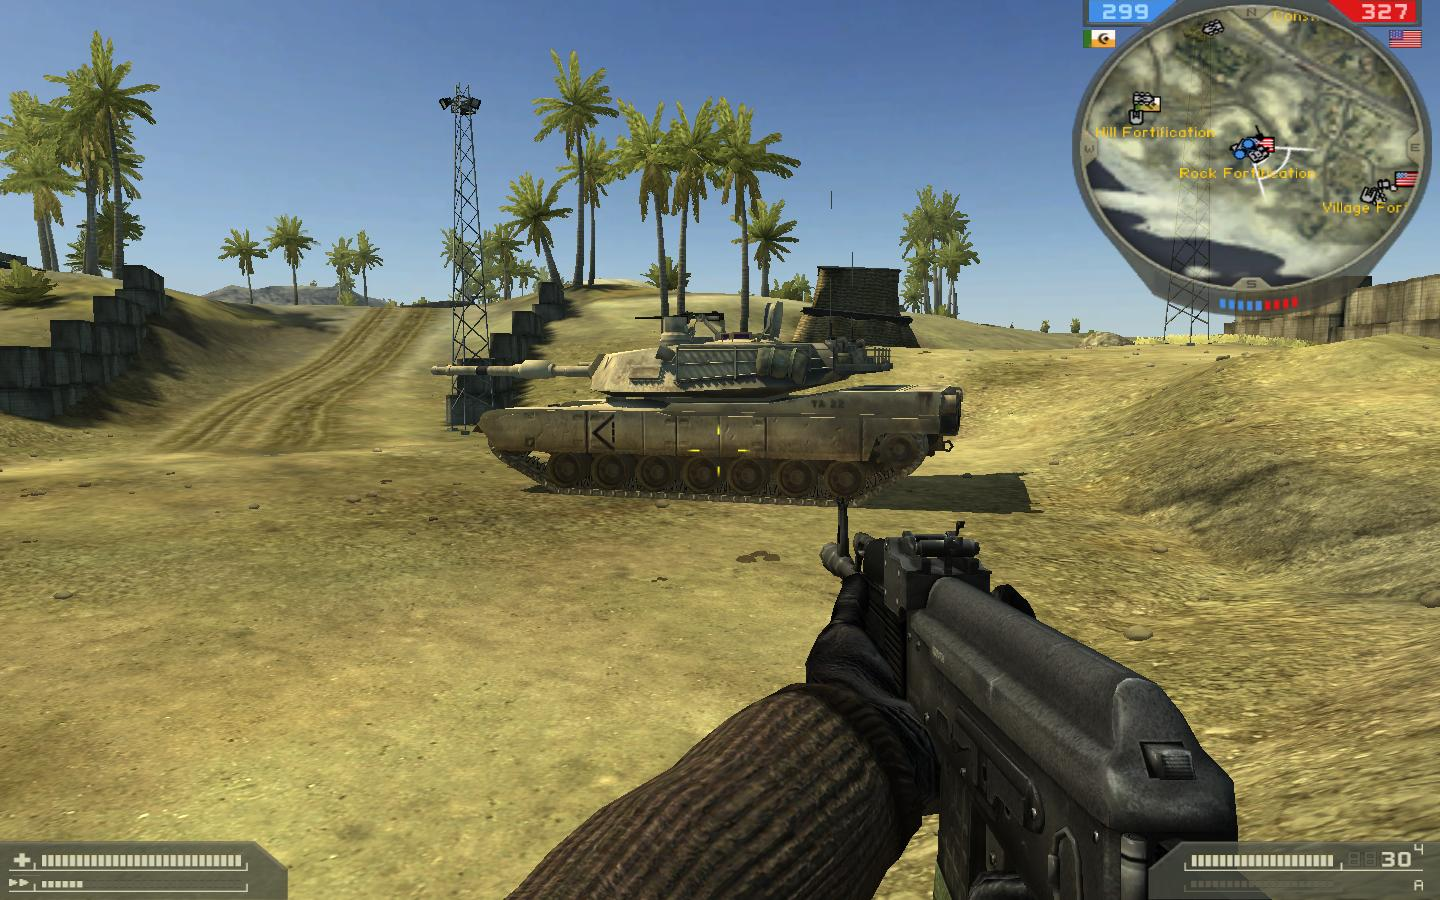 Battlefield 2 Free Download image 3